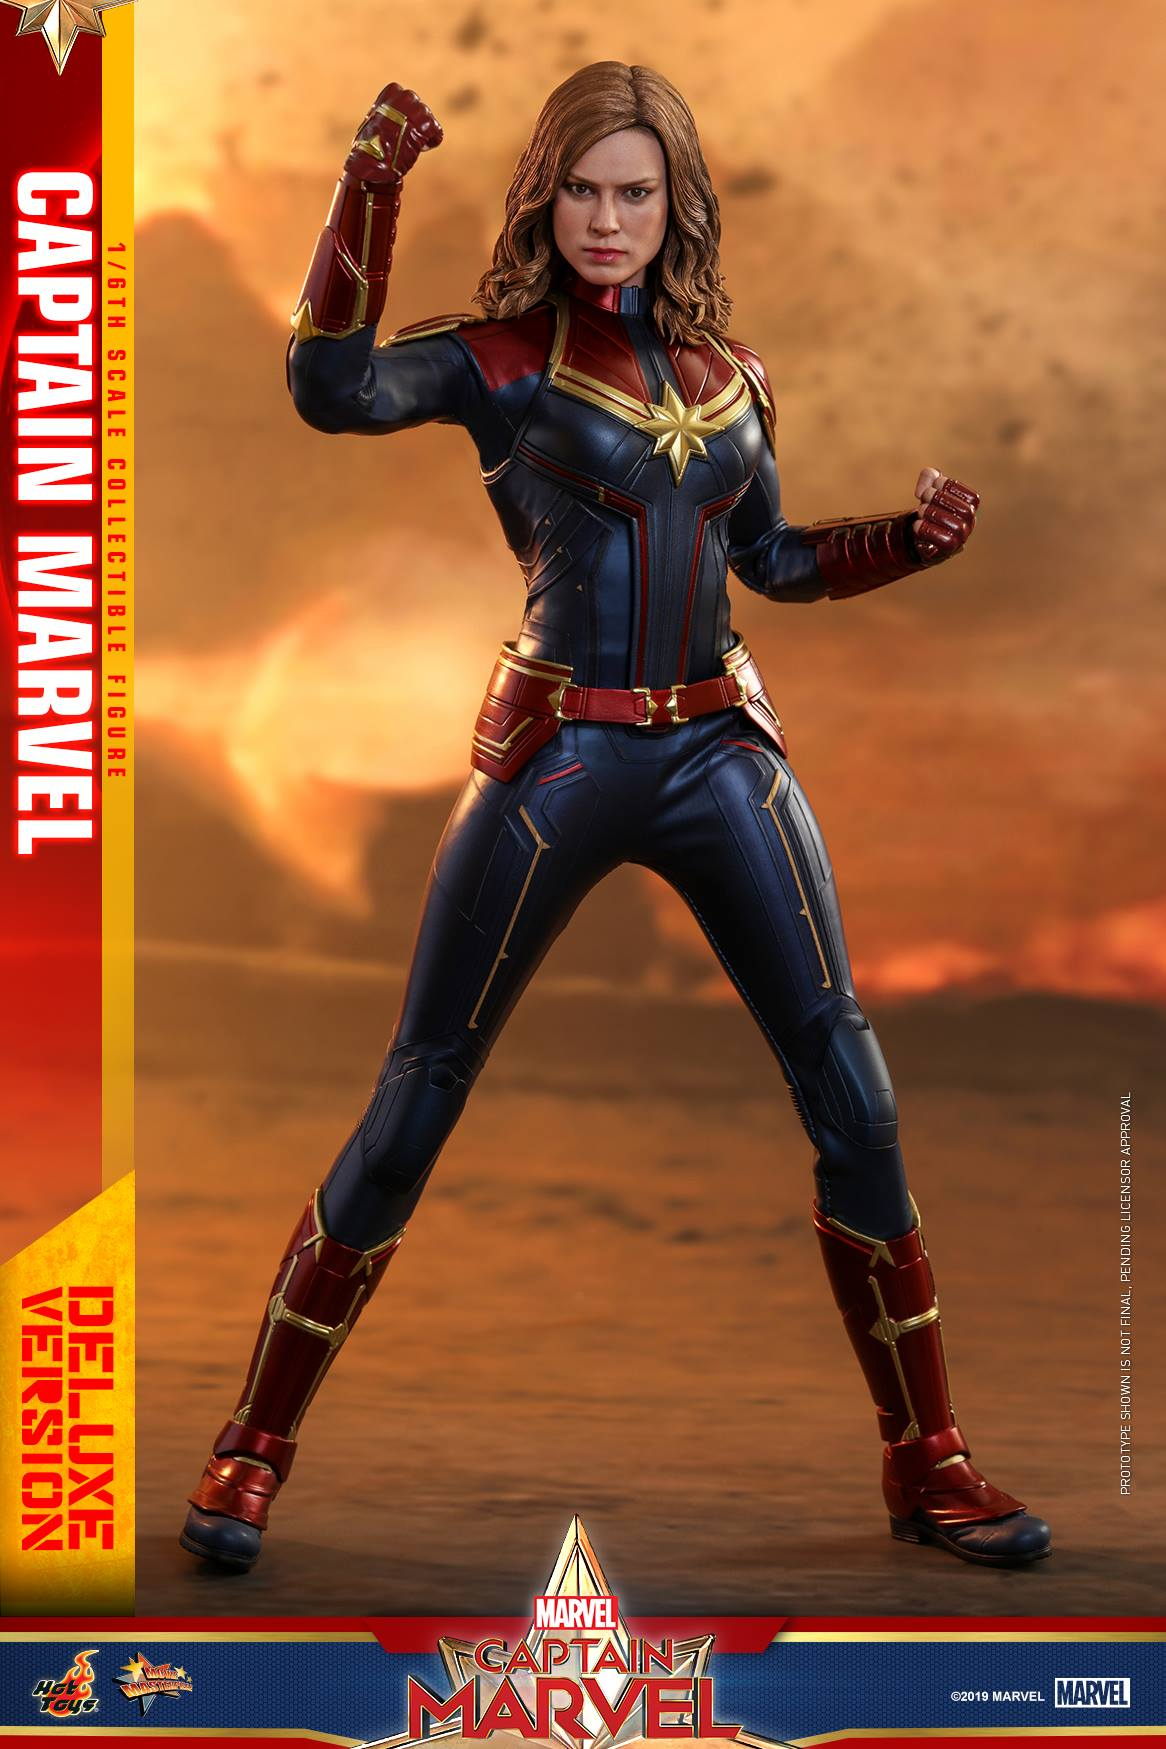 Hot Toys Marvel Captain Marvel Deluxe Sixth Scale Figure